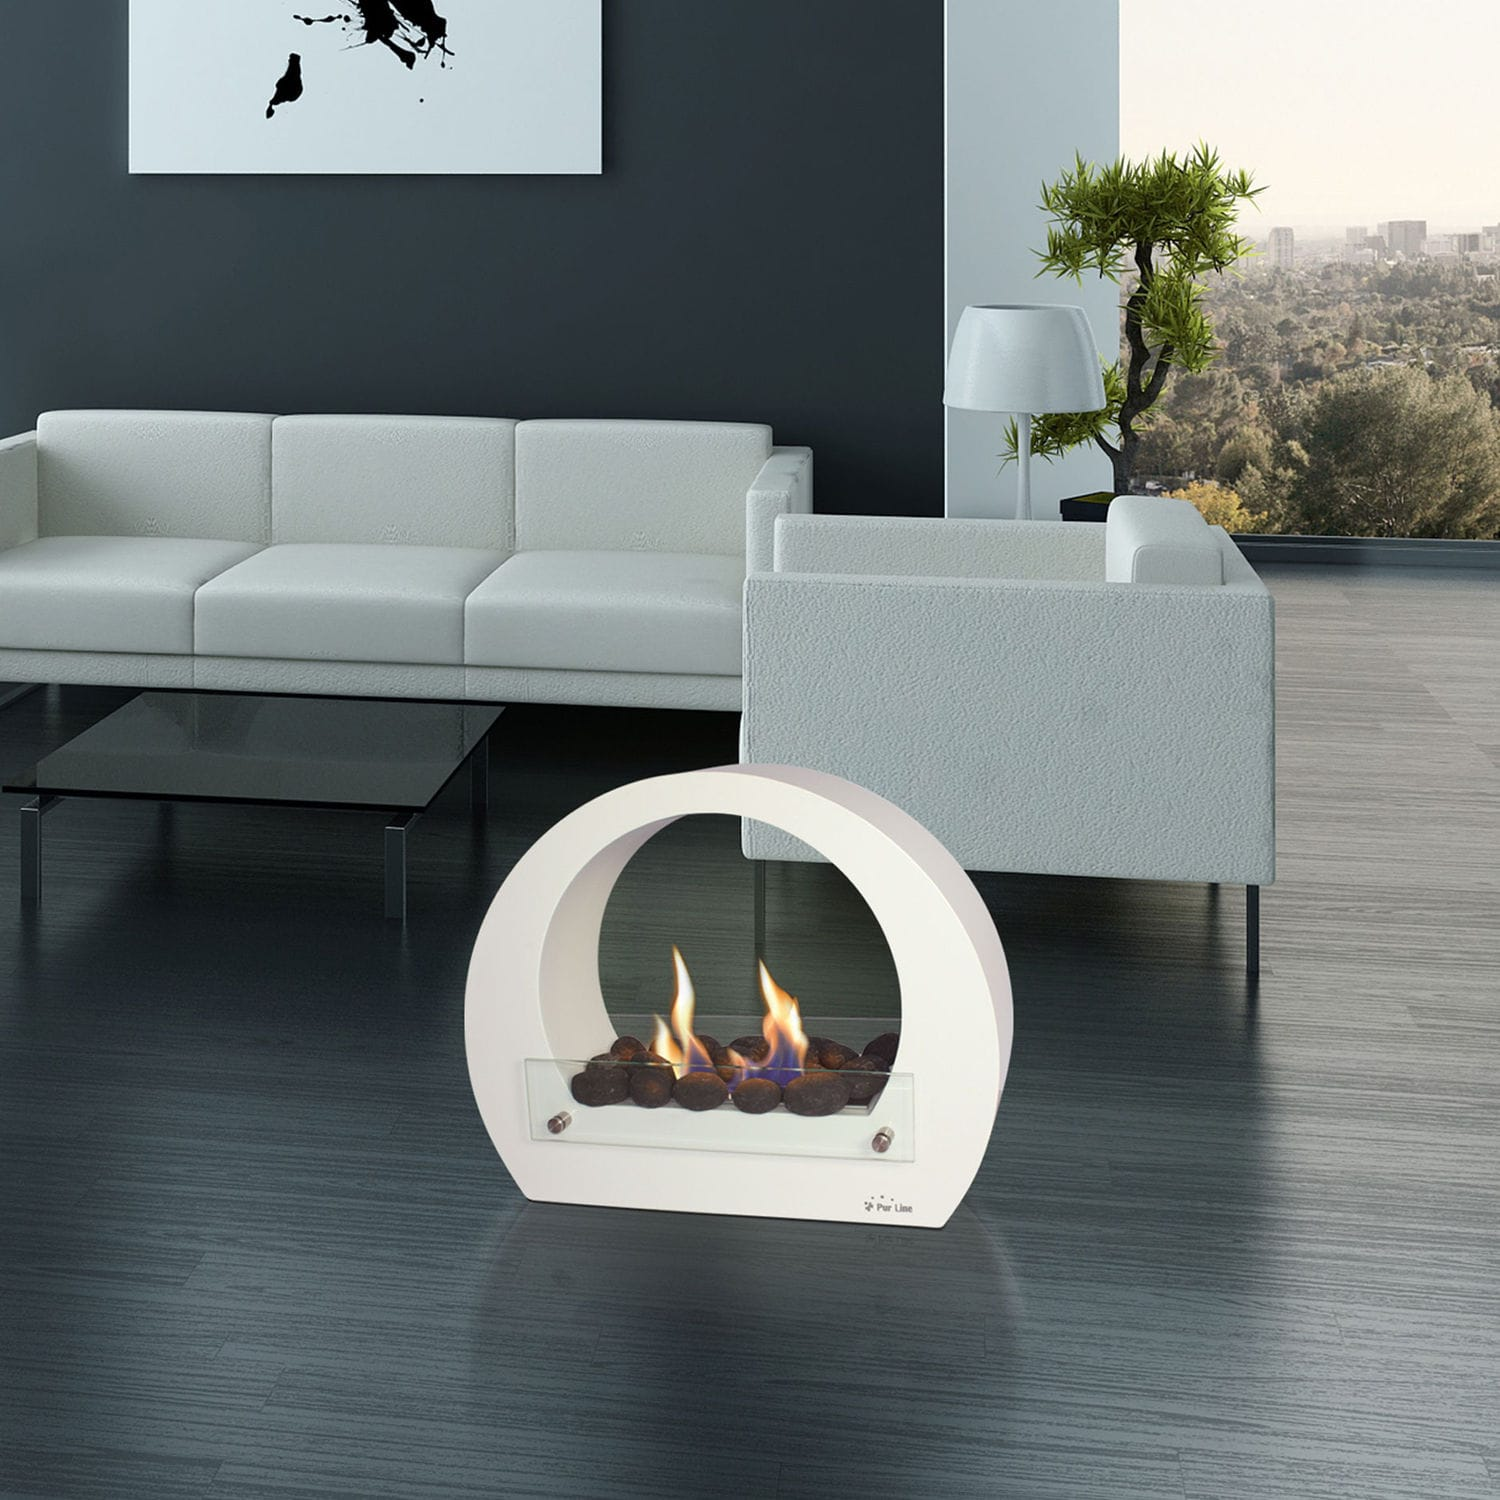 bio fireplaces home new best design lovely ideas fireplace in